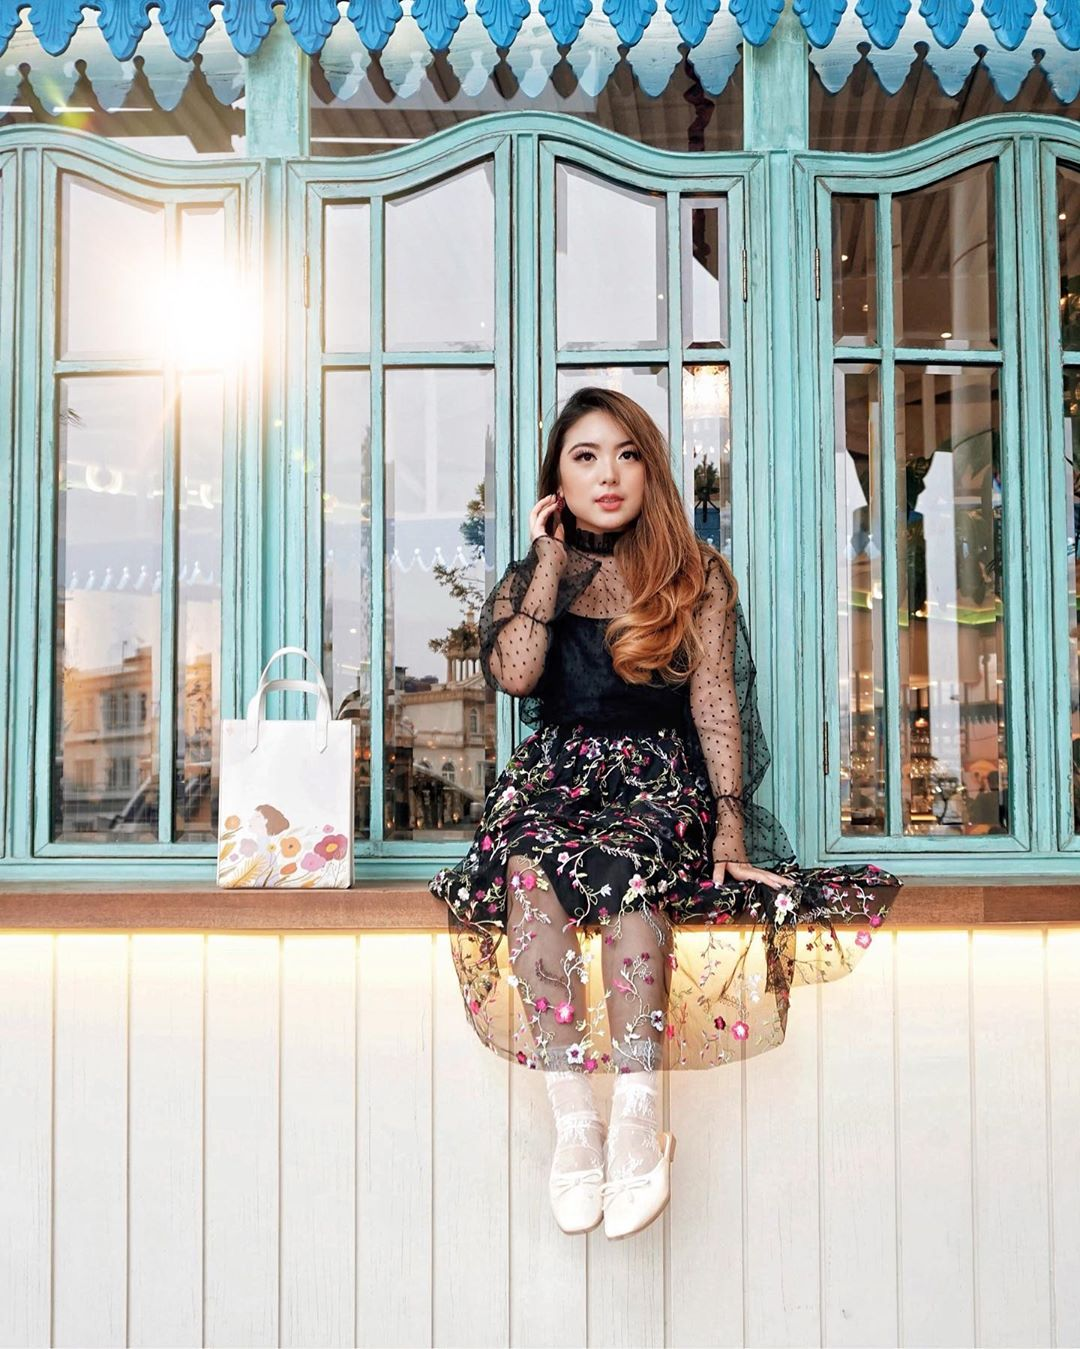 In My Zone With Tulle & Floral Prints. F Whatiwore - Womens Fashion